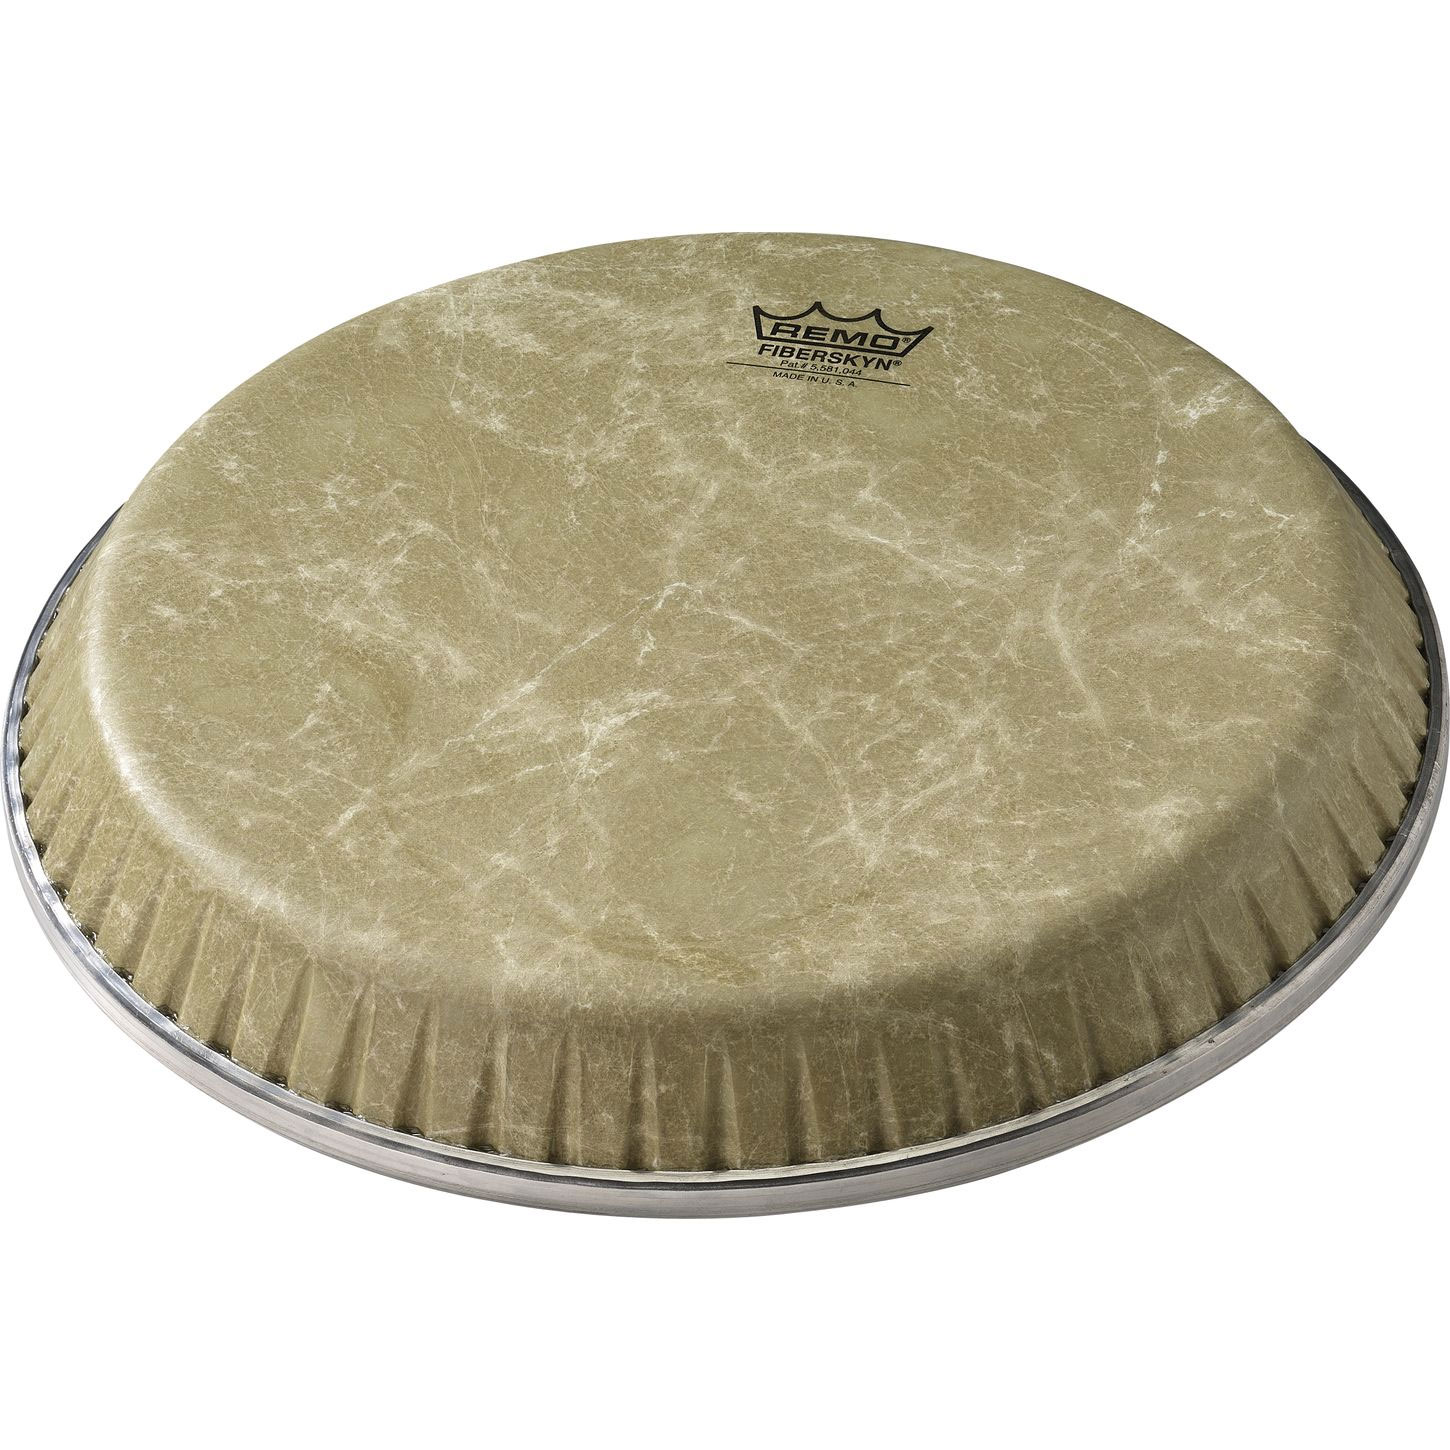 "Remo 11.75"" Symmetry Fiberskyn Conga Drum Head (D3 Collar)"